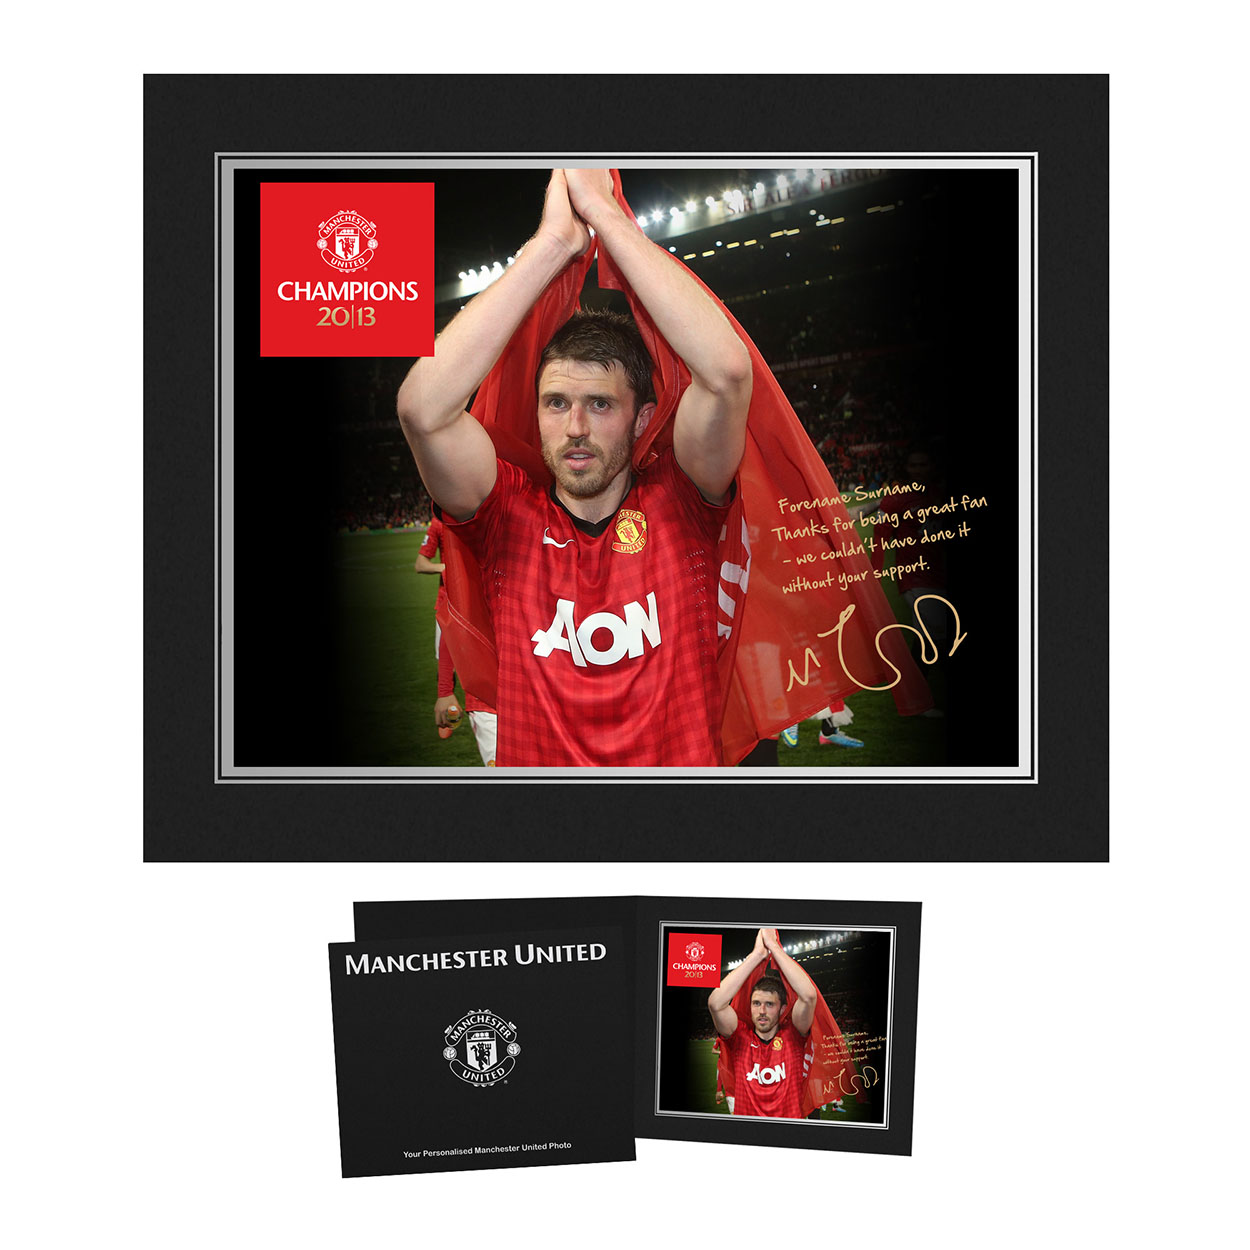 Personalised Champions 2013 Player Photo - Michael Carrick